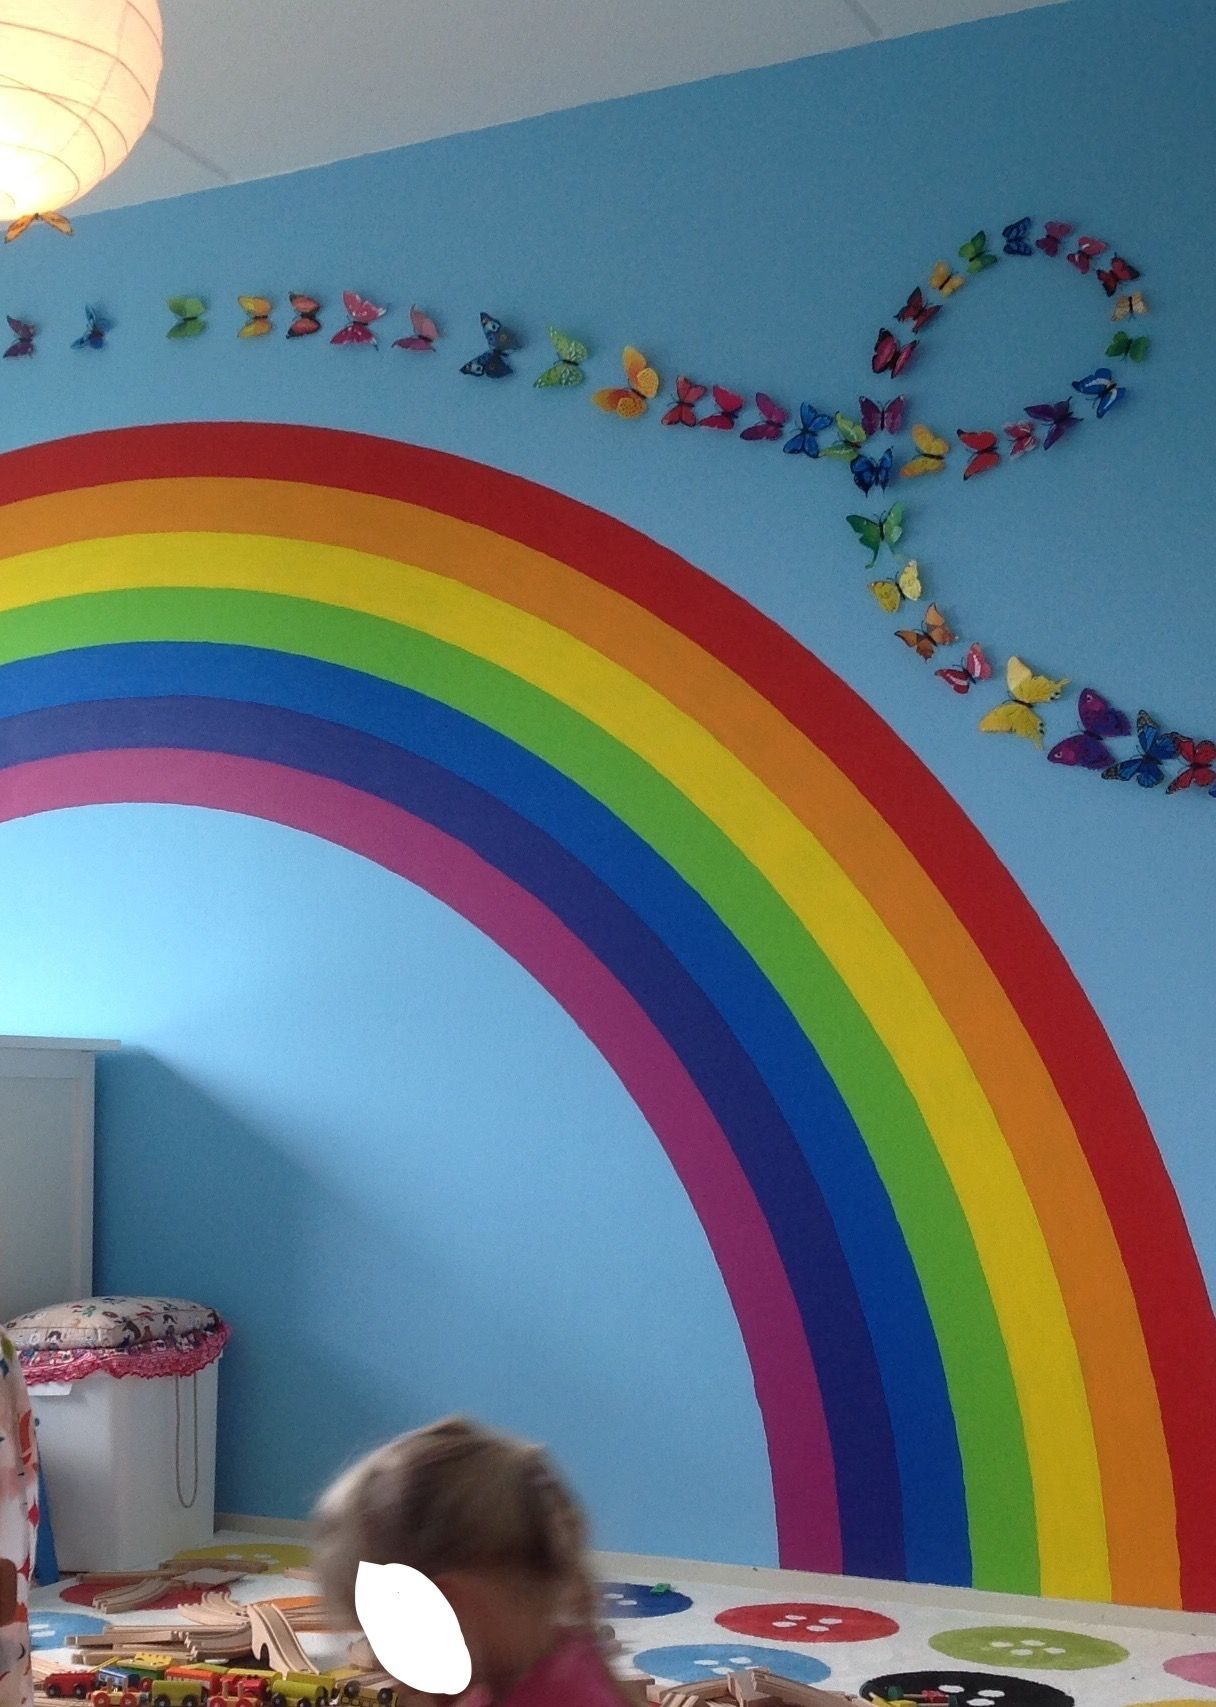 Rainbow And Butterfly Bedroom Rainbow Room Kids Rainbow For Rainbow Room Decor Rainbow Room Kids Rainbow Room Girls Rainbow Bedroom